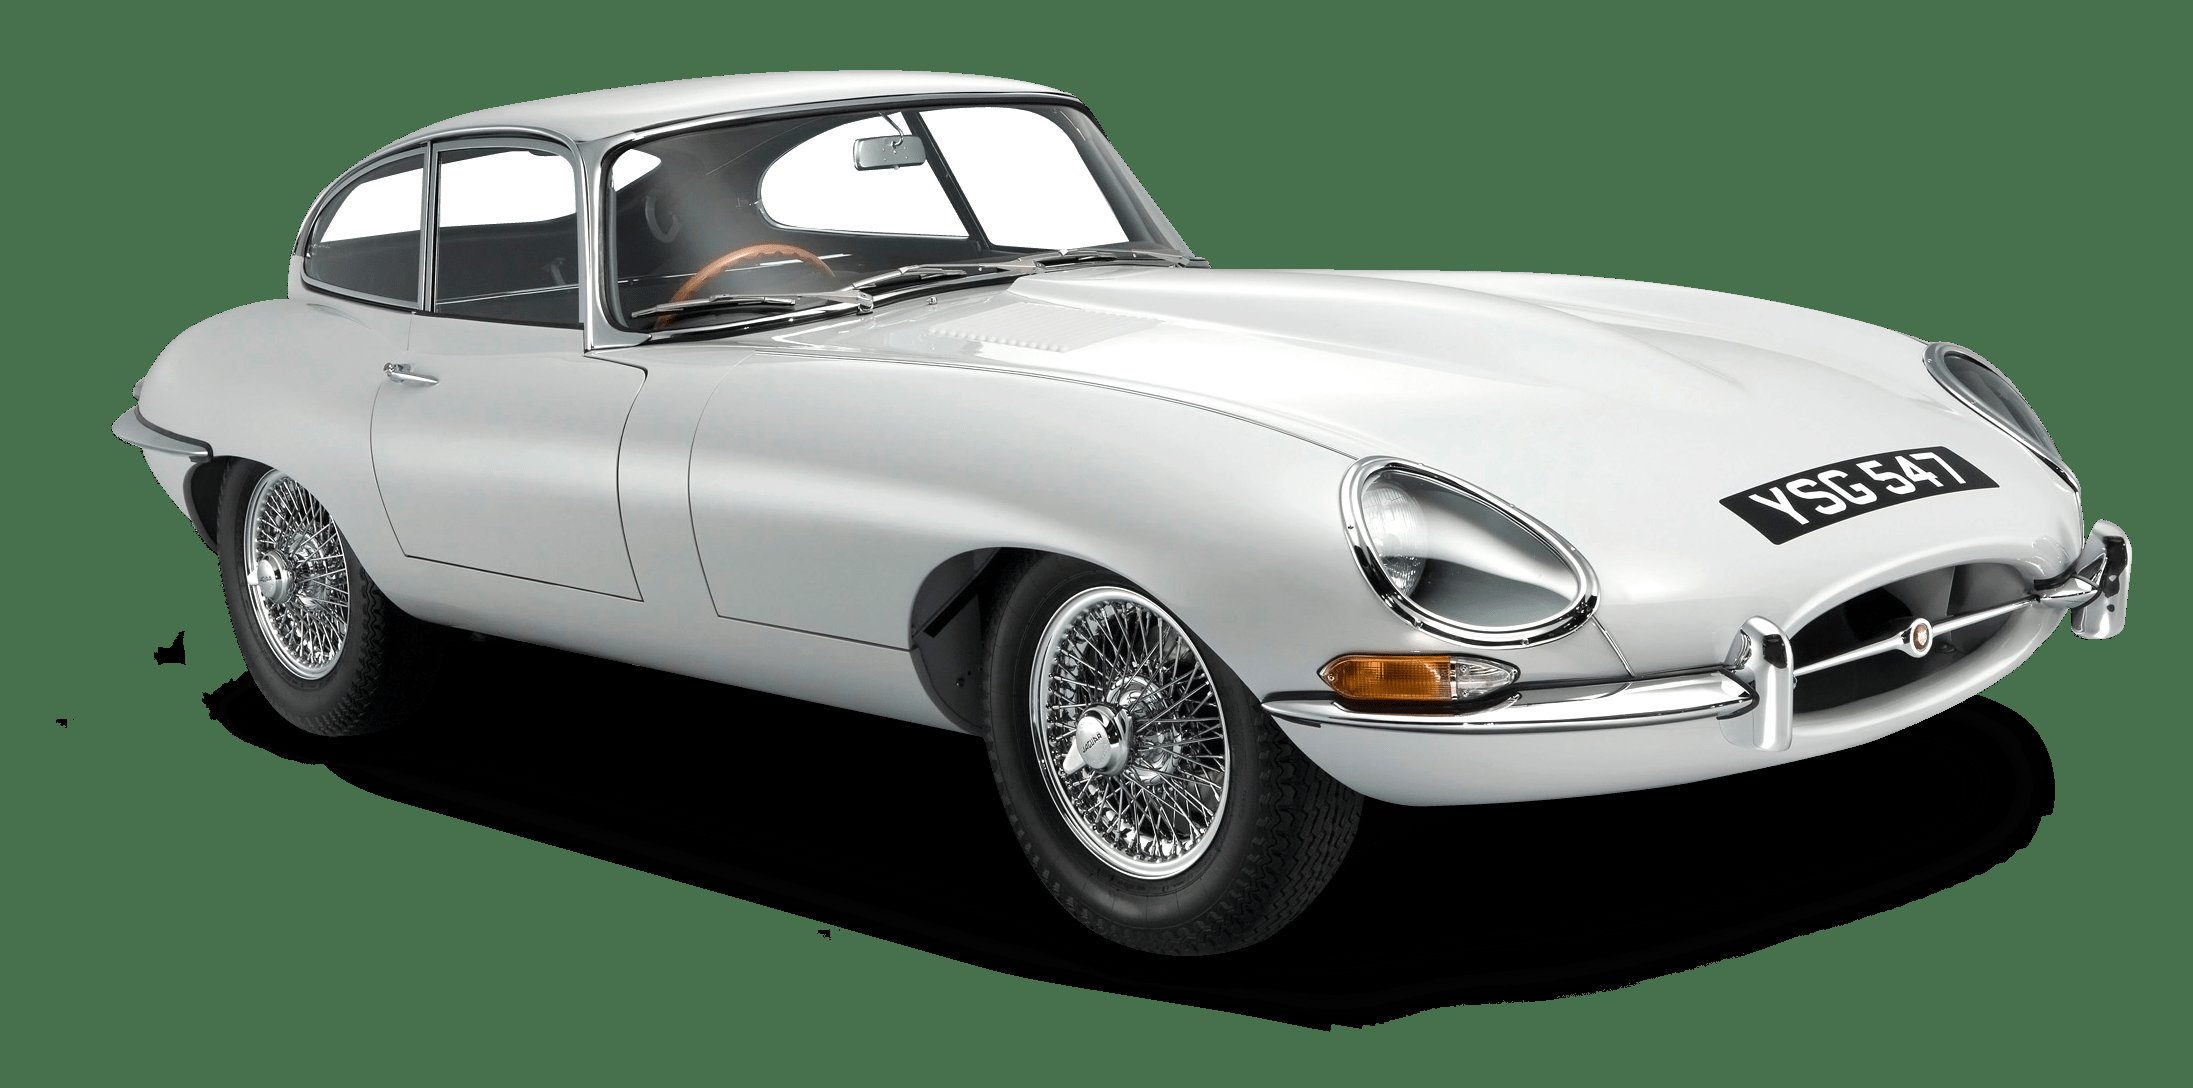 New Jaguar E Type Coupe Car Png Image Pngpix On This Month